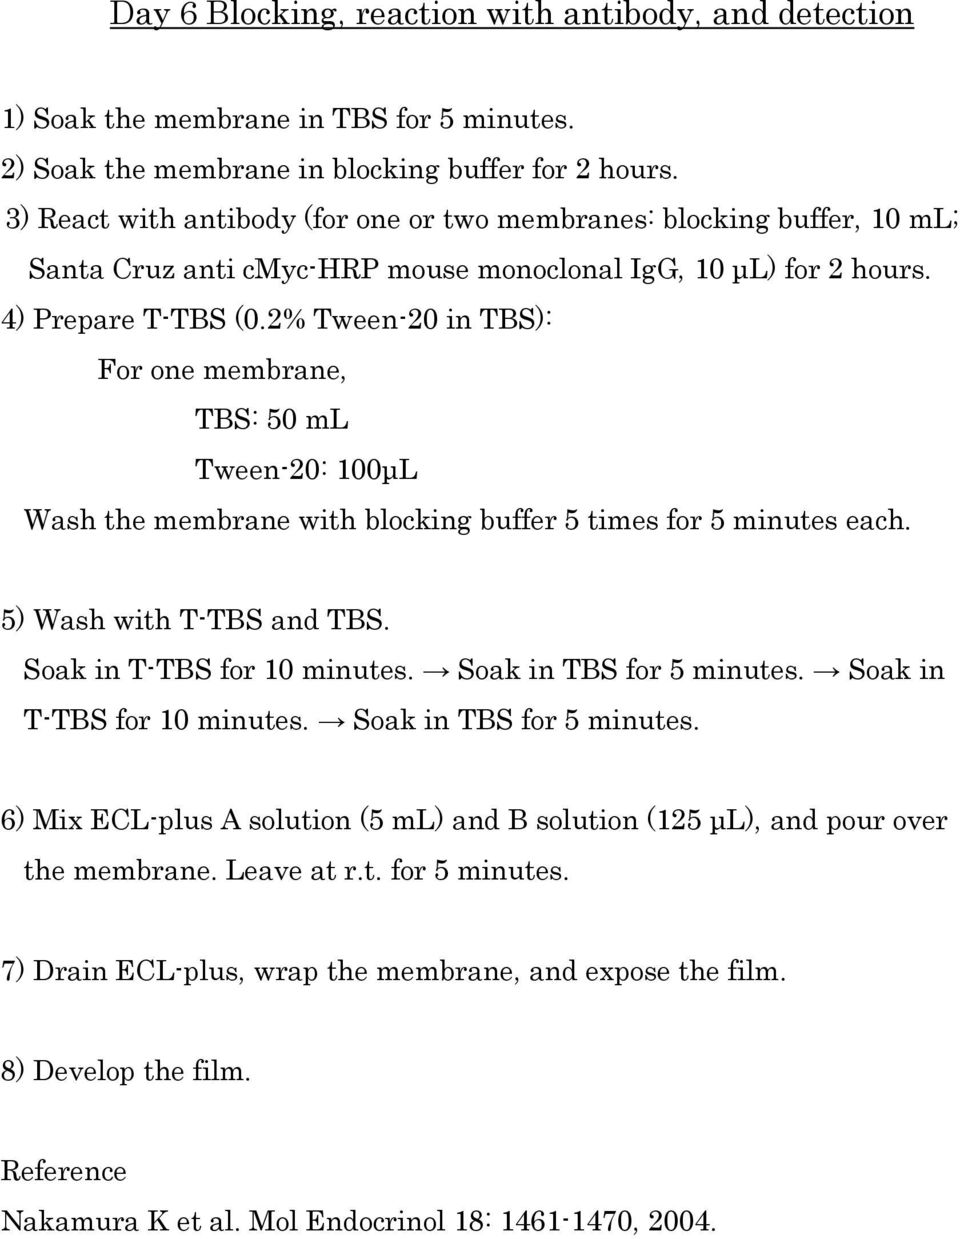 2% Tween-20 in TBS): For one membrane, TBS: 50 ml Tween-20: 100μL Wash the membrane with blocking buffer 5 times for 5 minutes each. 5) Wash with T-TBS and TBS. Soak in T-TBS for 10 minutes.